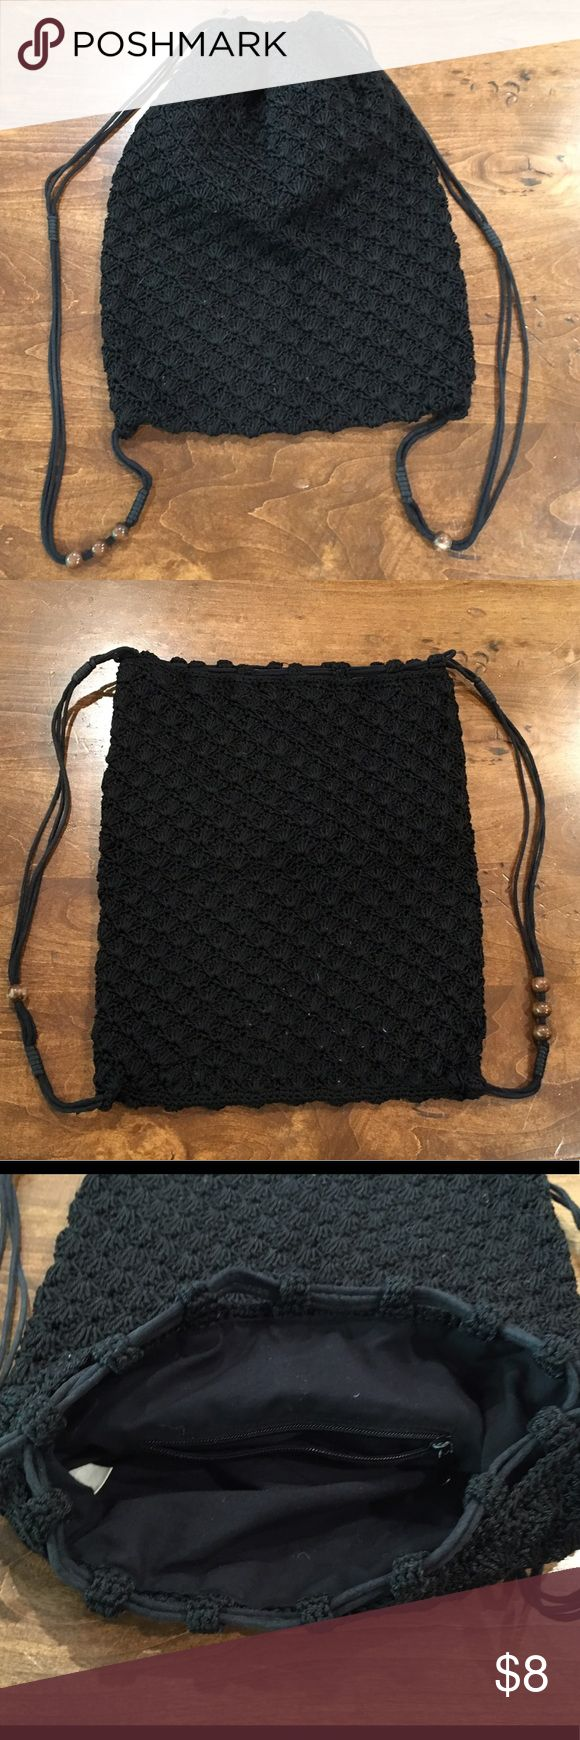 Black backpack sack crochet with straps Cute black crocheted draw string backpack. Old Navy Bags Backpacks